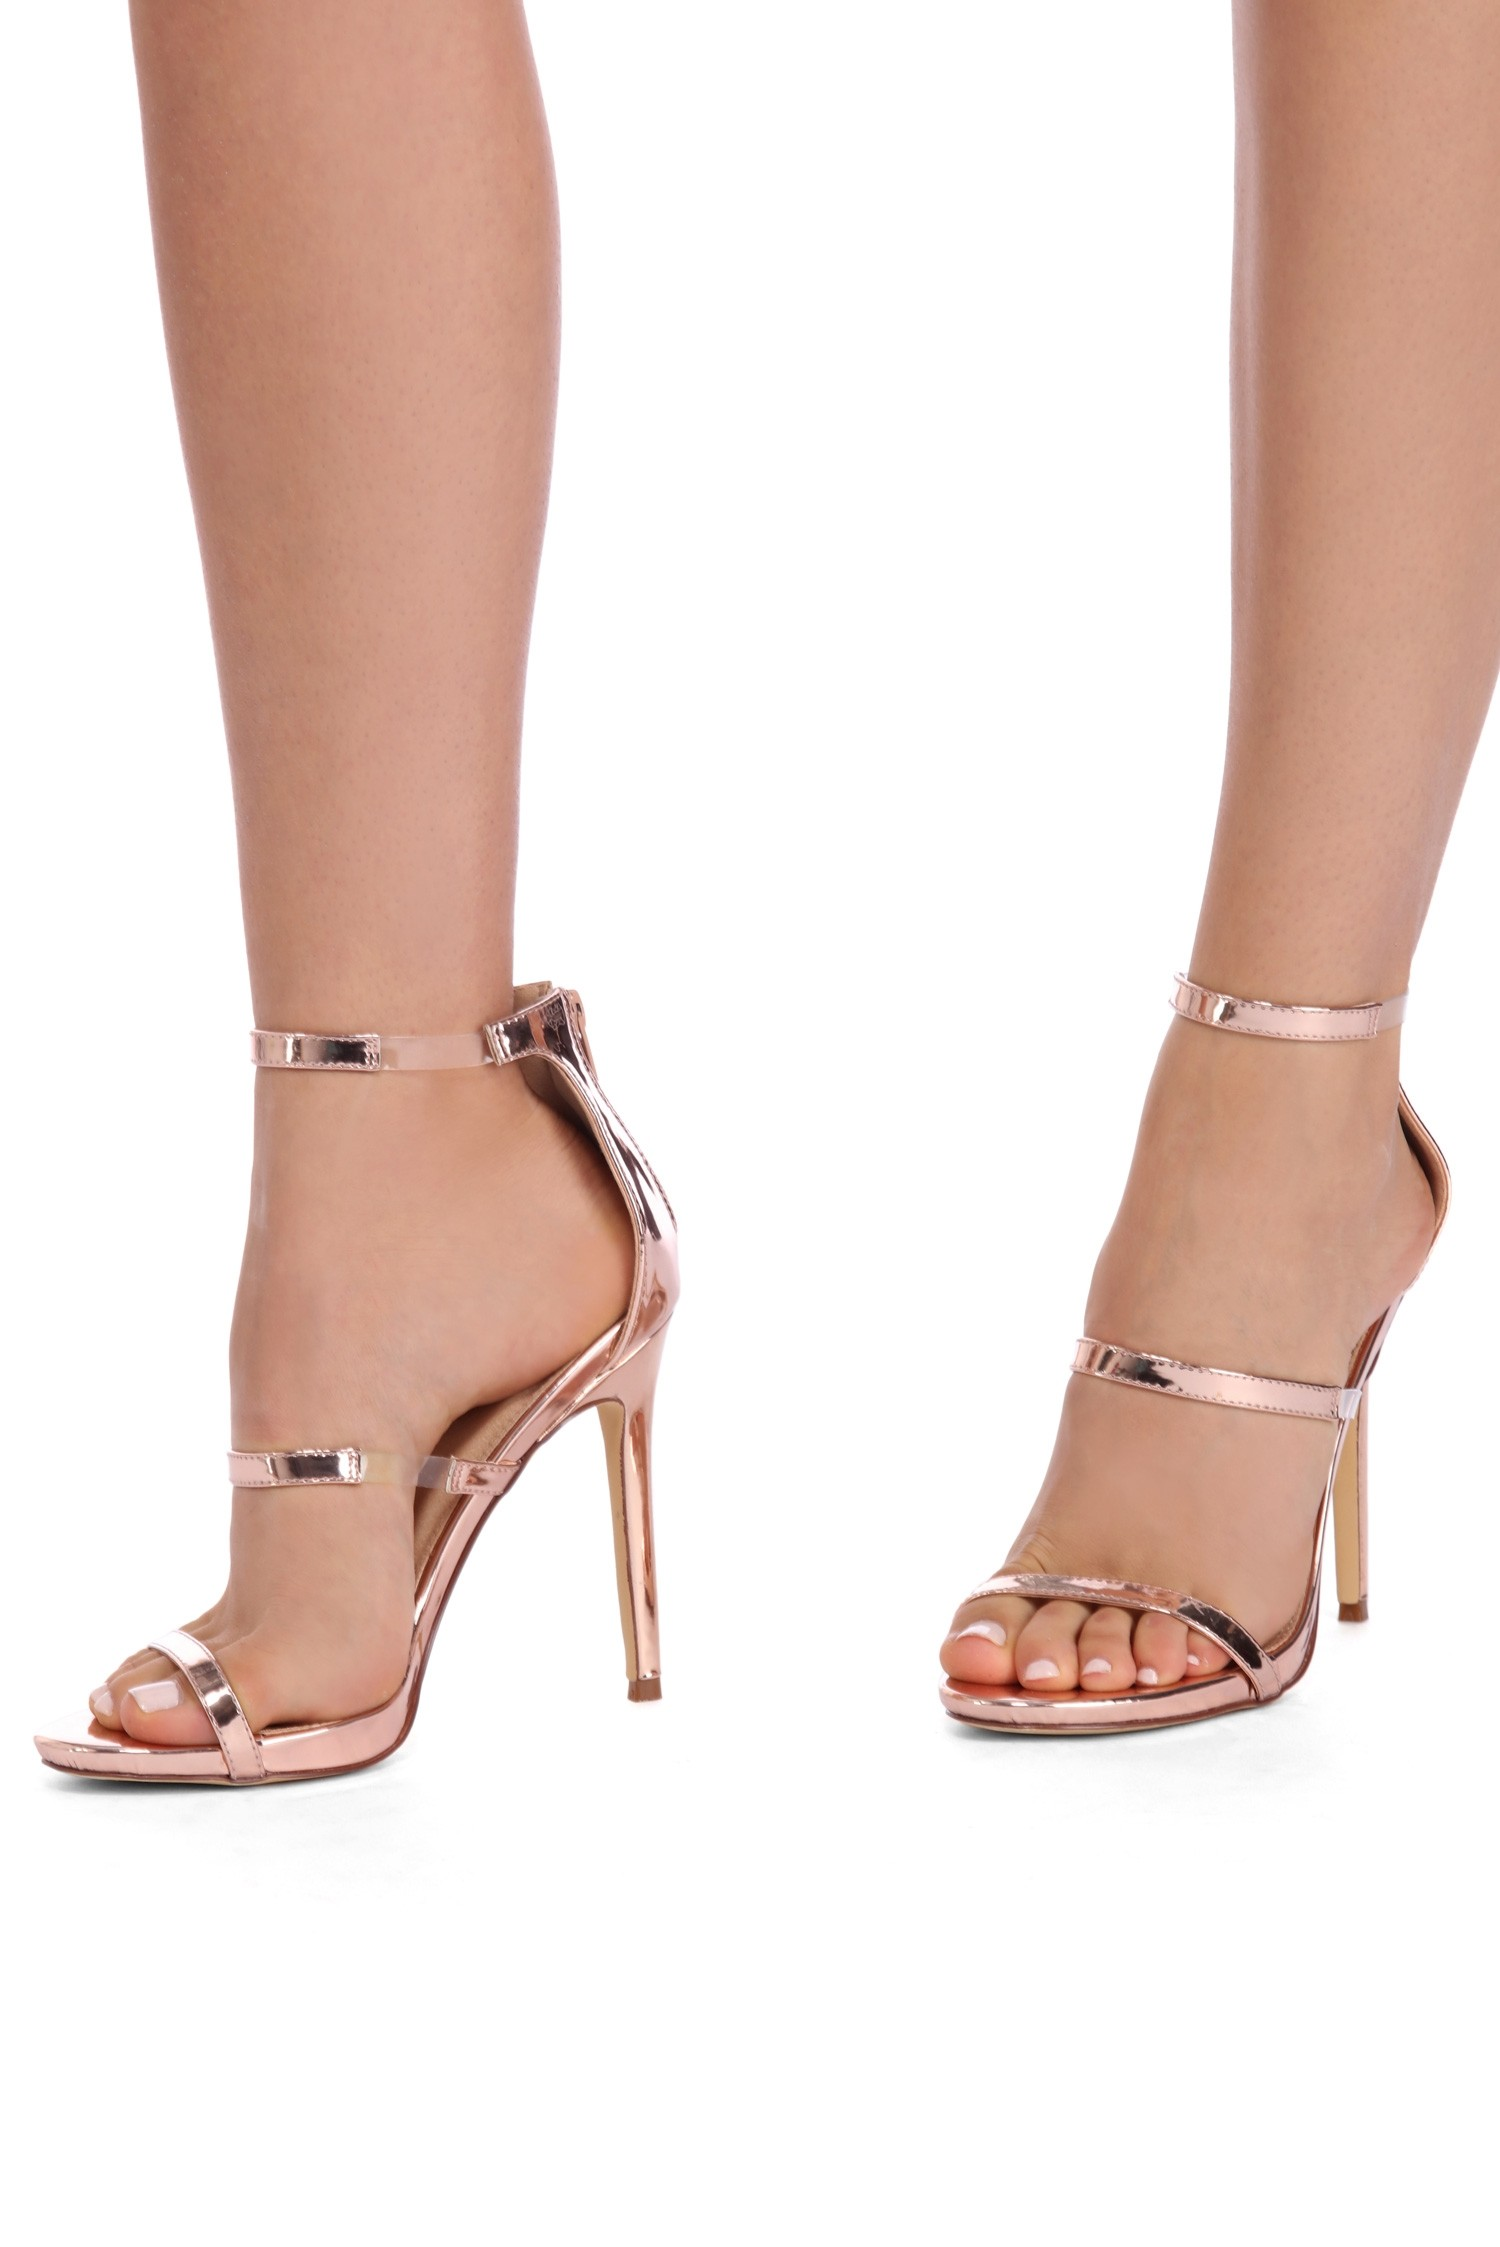 Rose Gold Heels cVoB79Yd